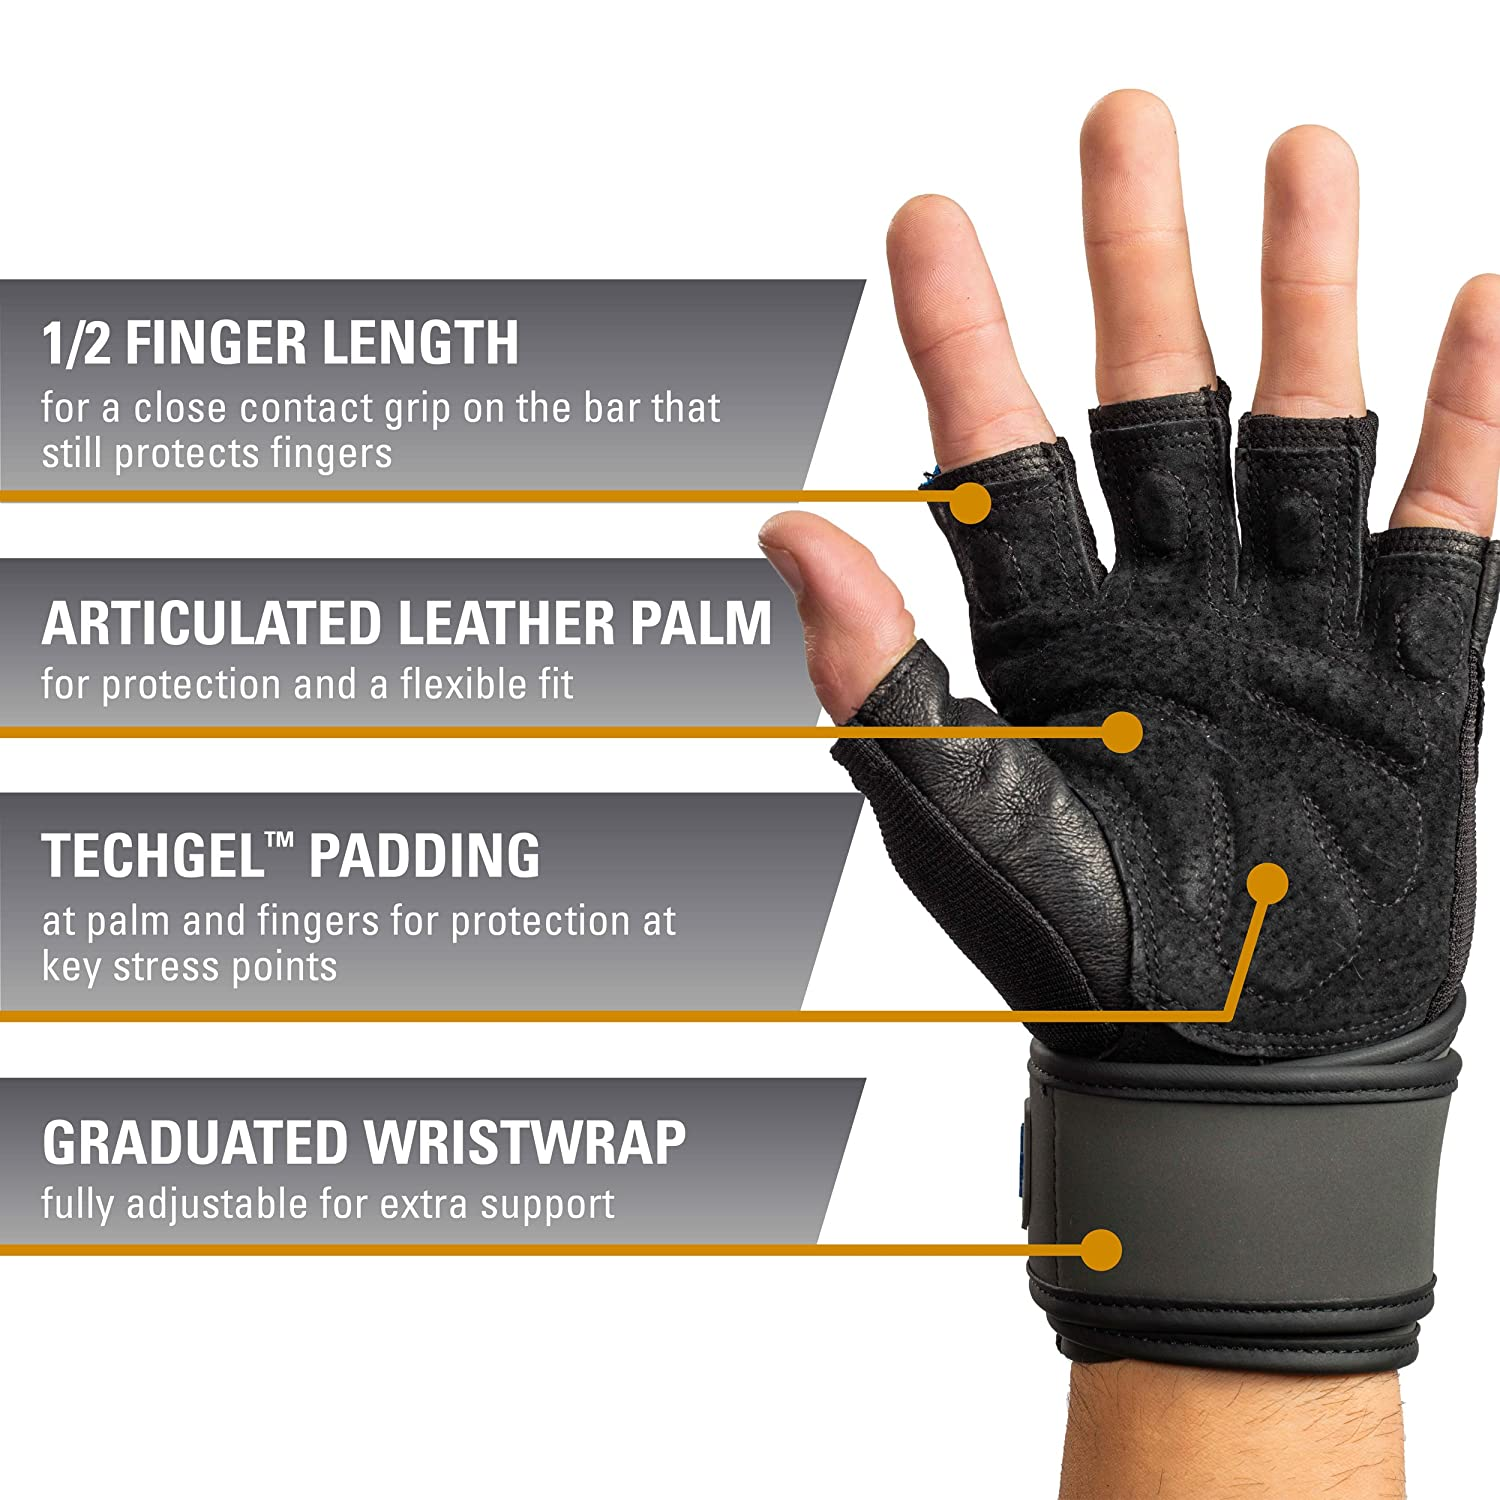 bda48e46a50 Amazon.com   Harbinger Training Grip Wristwrap Weightlifting Gloves with  TechGel-Padded Leather Palm (Pair)